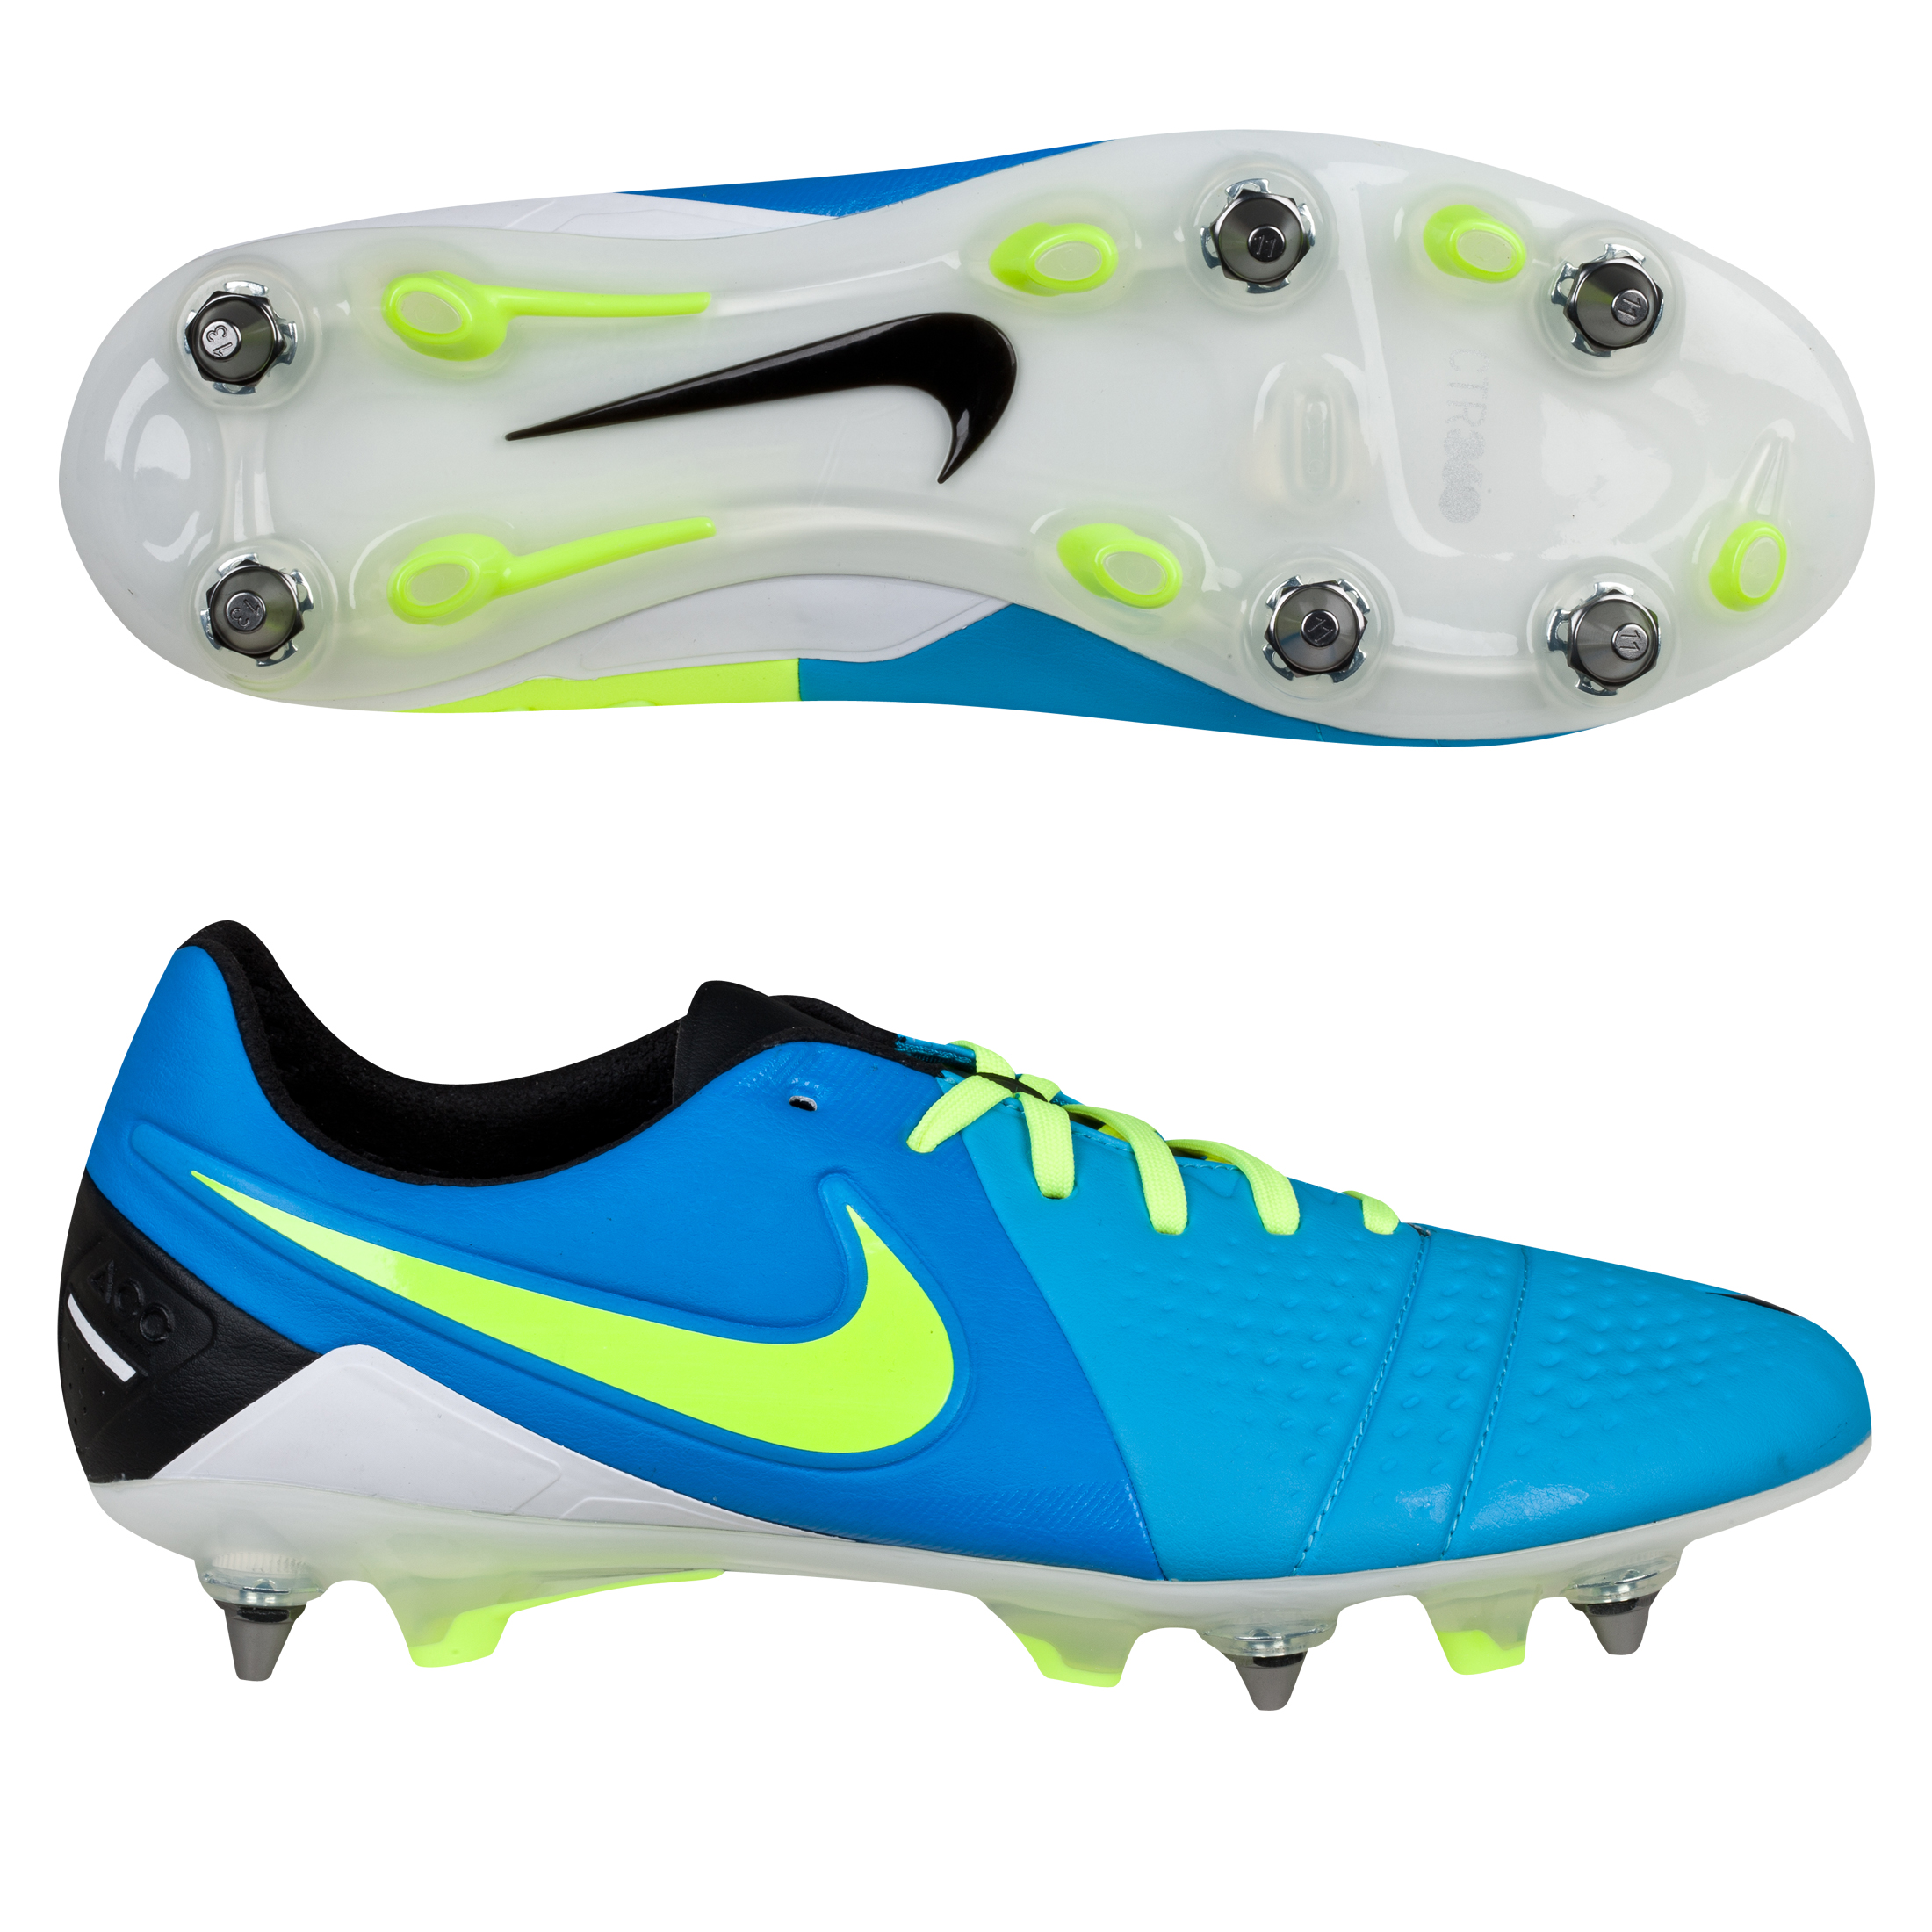 Nike CTR360 Maestri III Soft Ground Pro Football Boots Blue